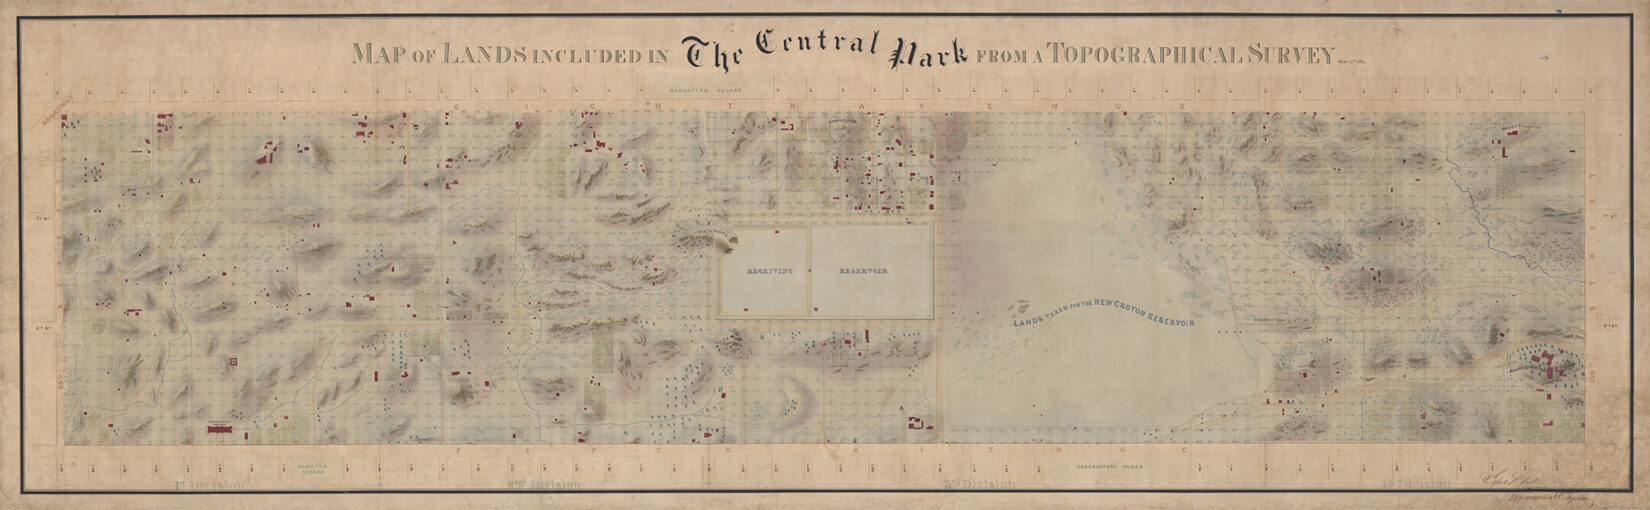 "The map is an engraving from 1855 showing a topographical survey of the land of ""The Central Park"""